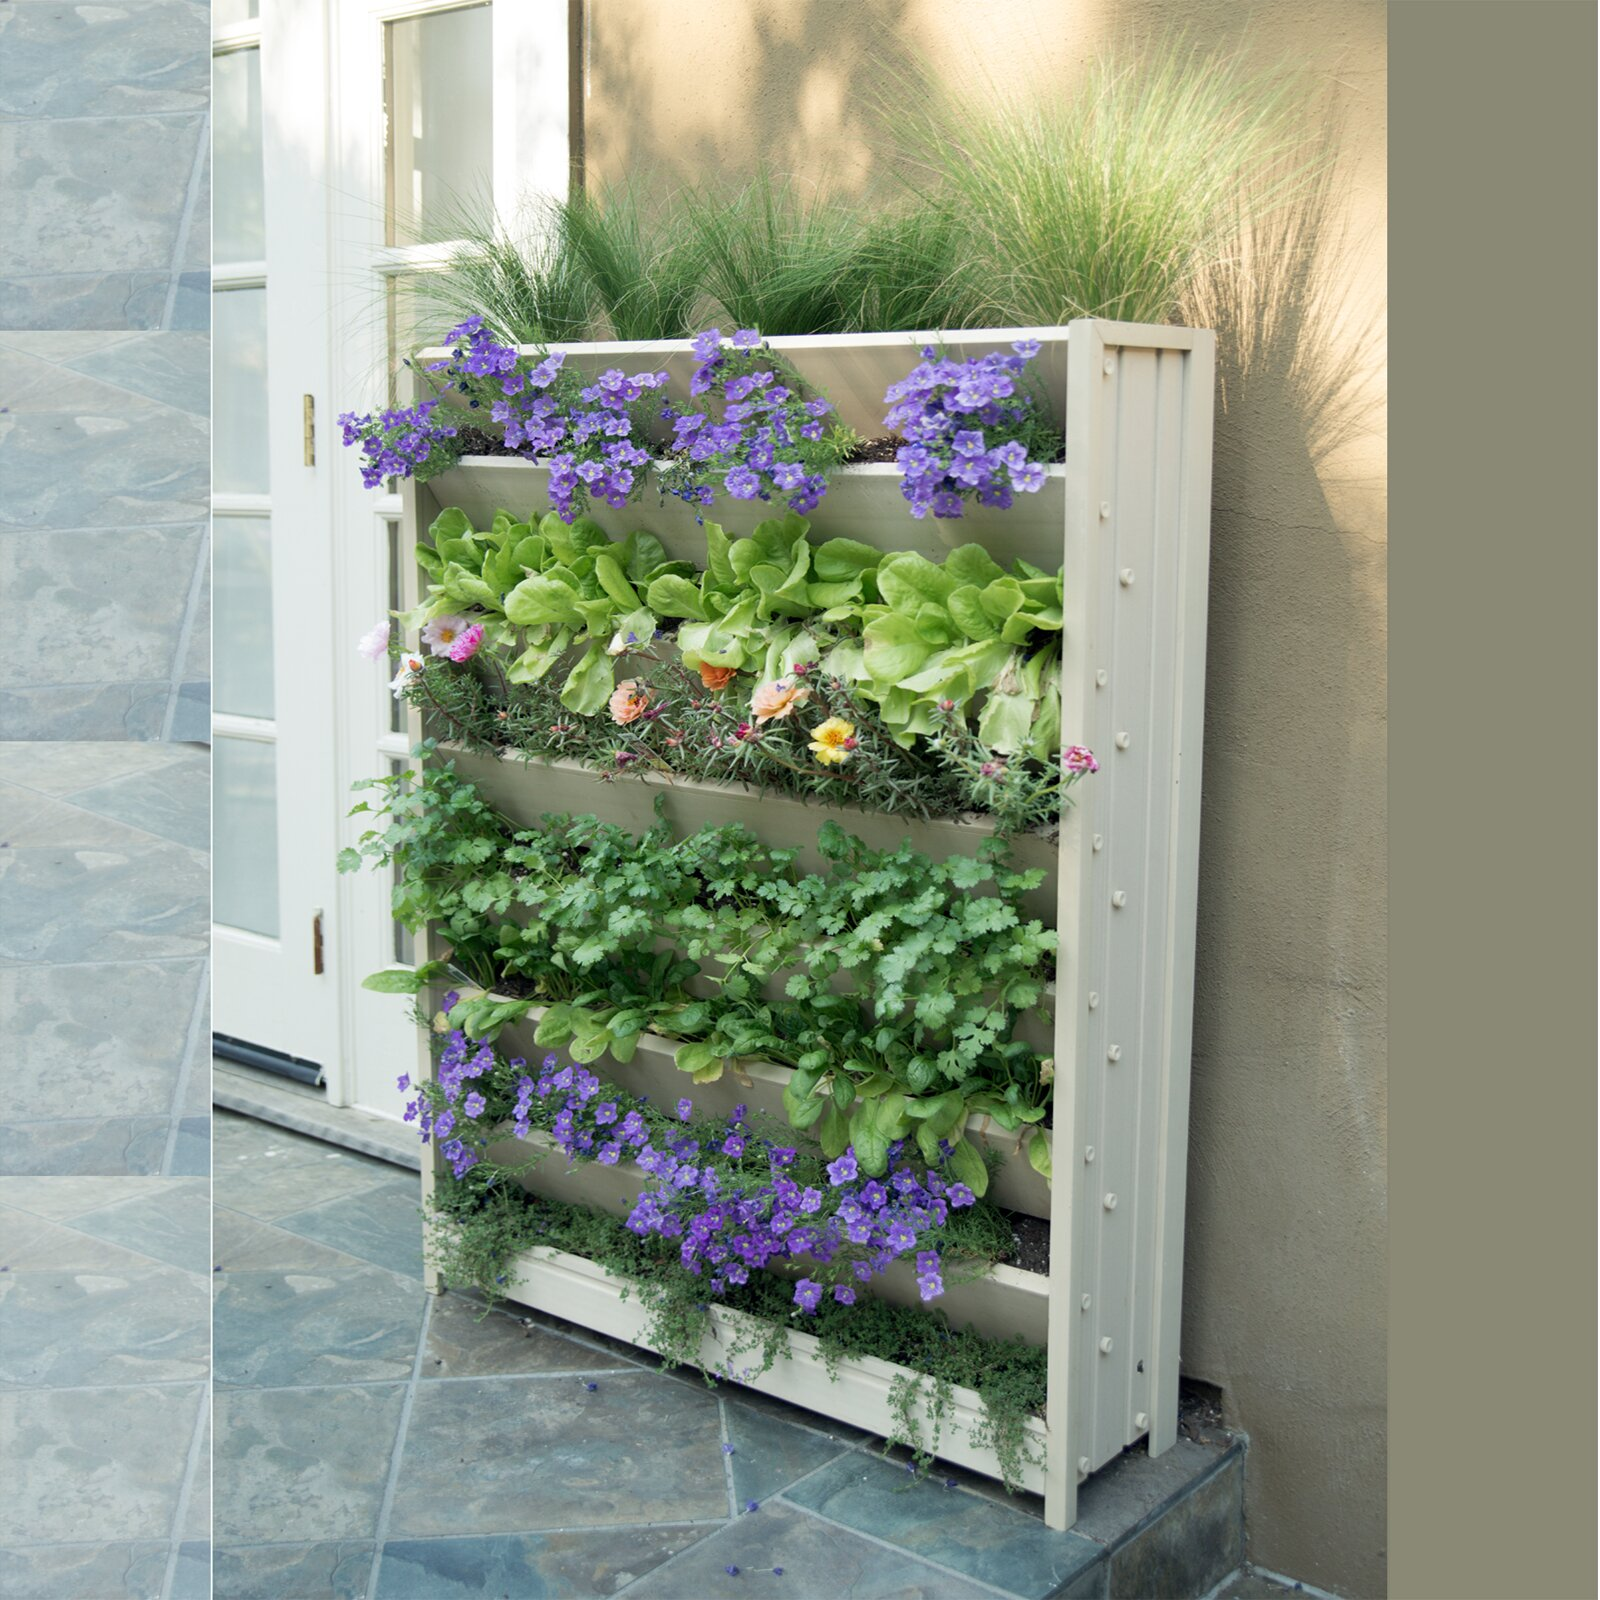 New age garden ecoflex wall mounted planter reviews wayfair - Wall mounted planters outdoor ...